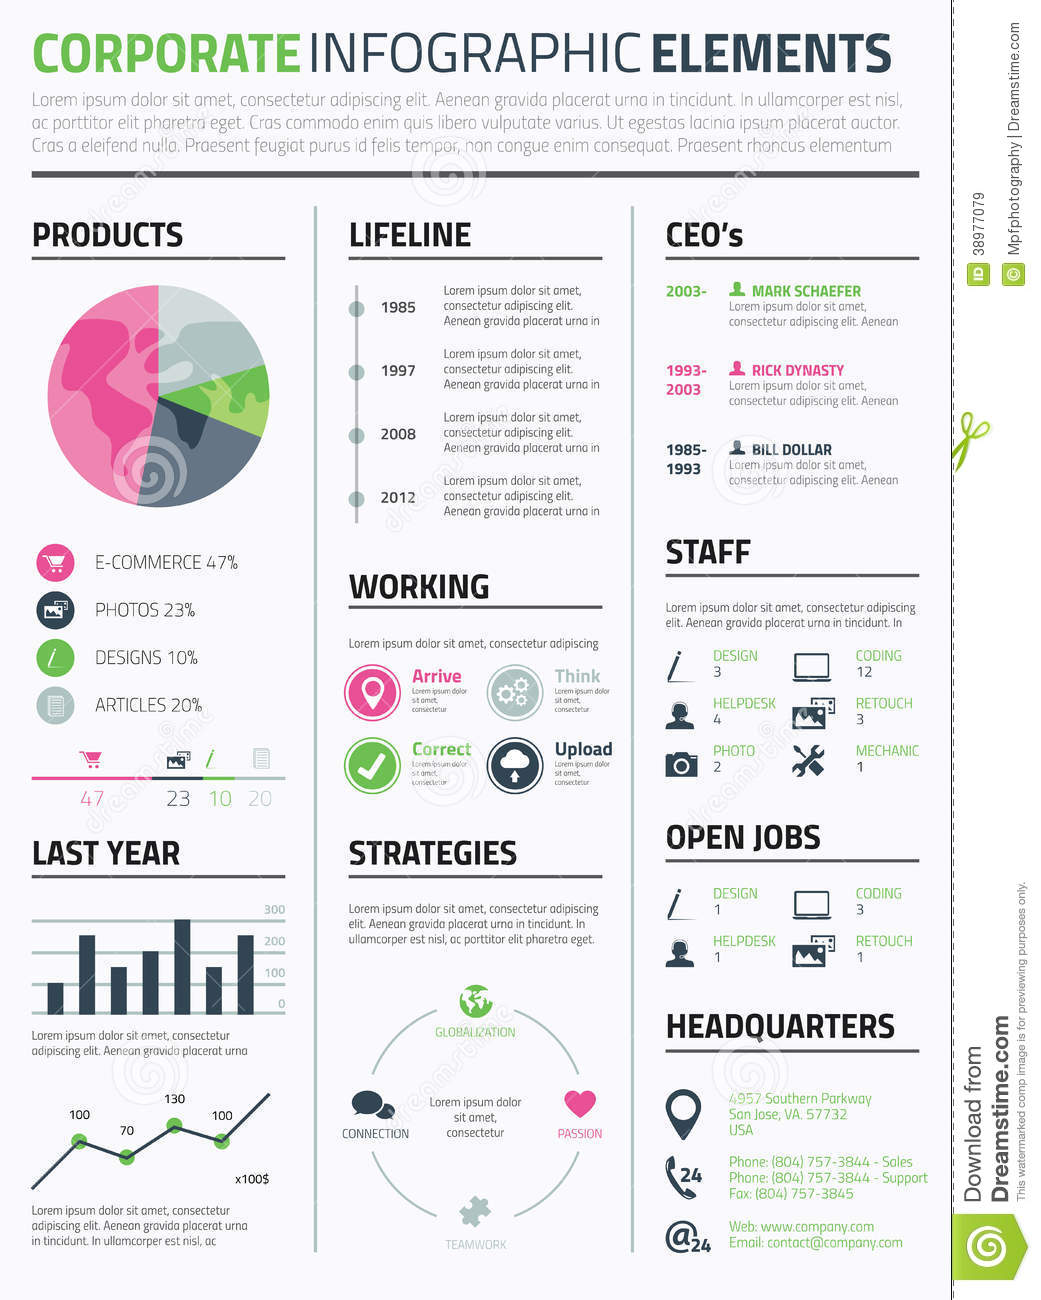 corporate infographic resume elements template stock